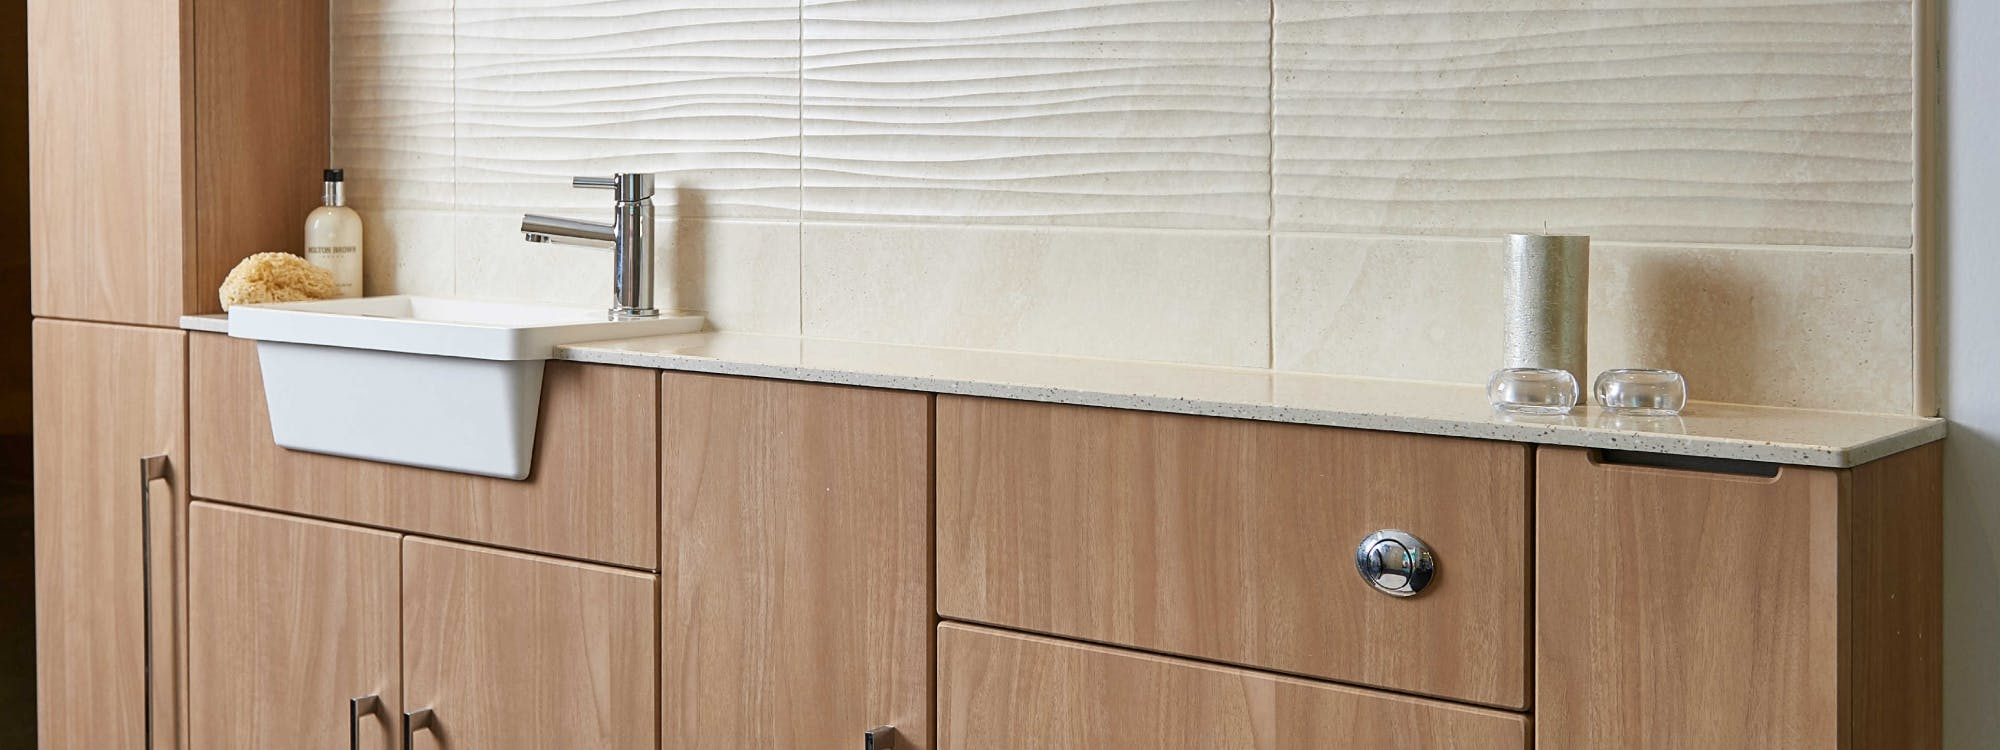 At our Leeds Bathroom Showroom you will discover a wide selection of bathroom storage and fitted furniture.